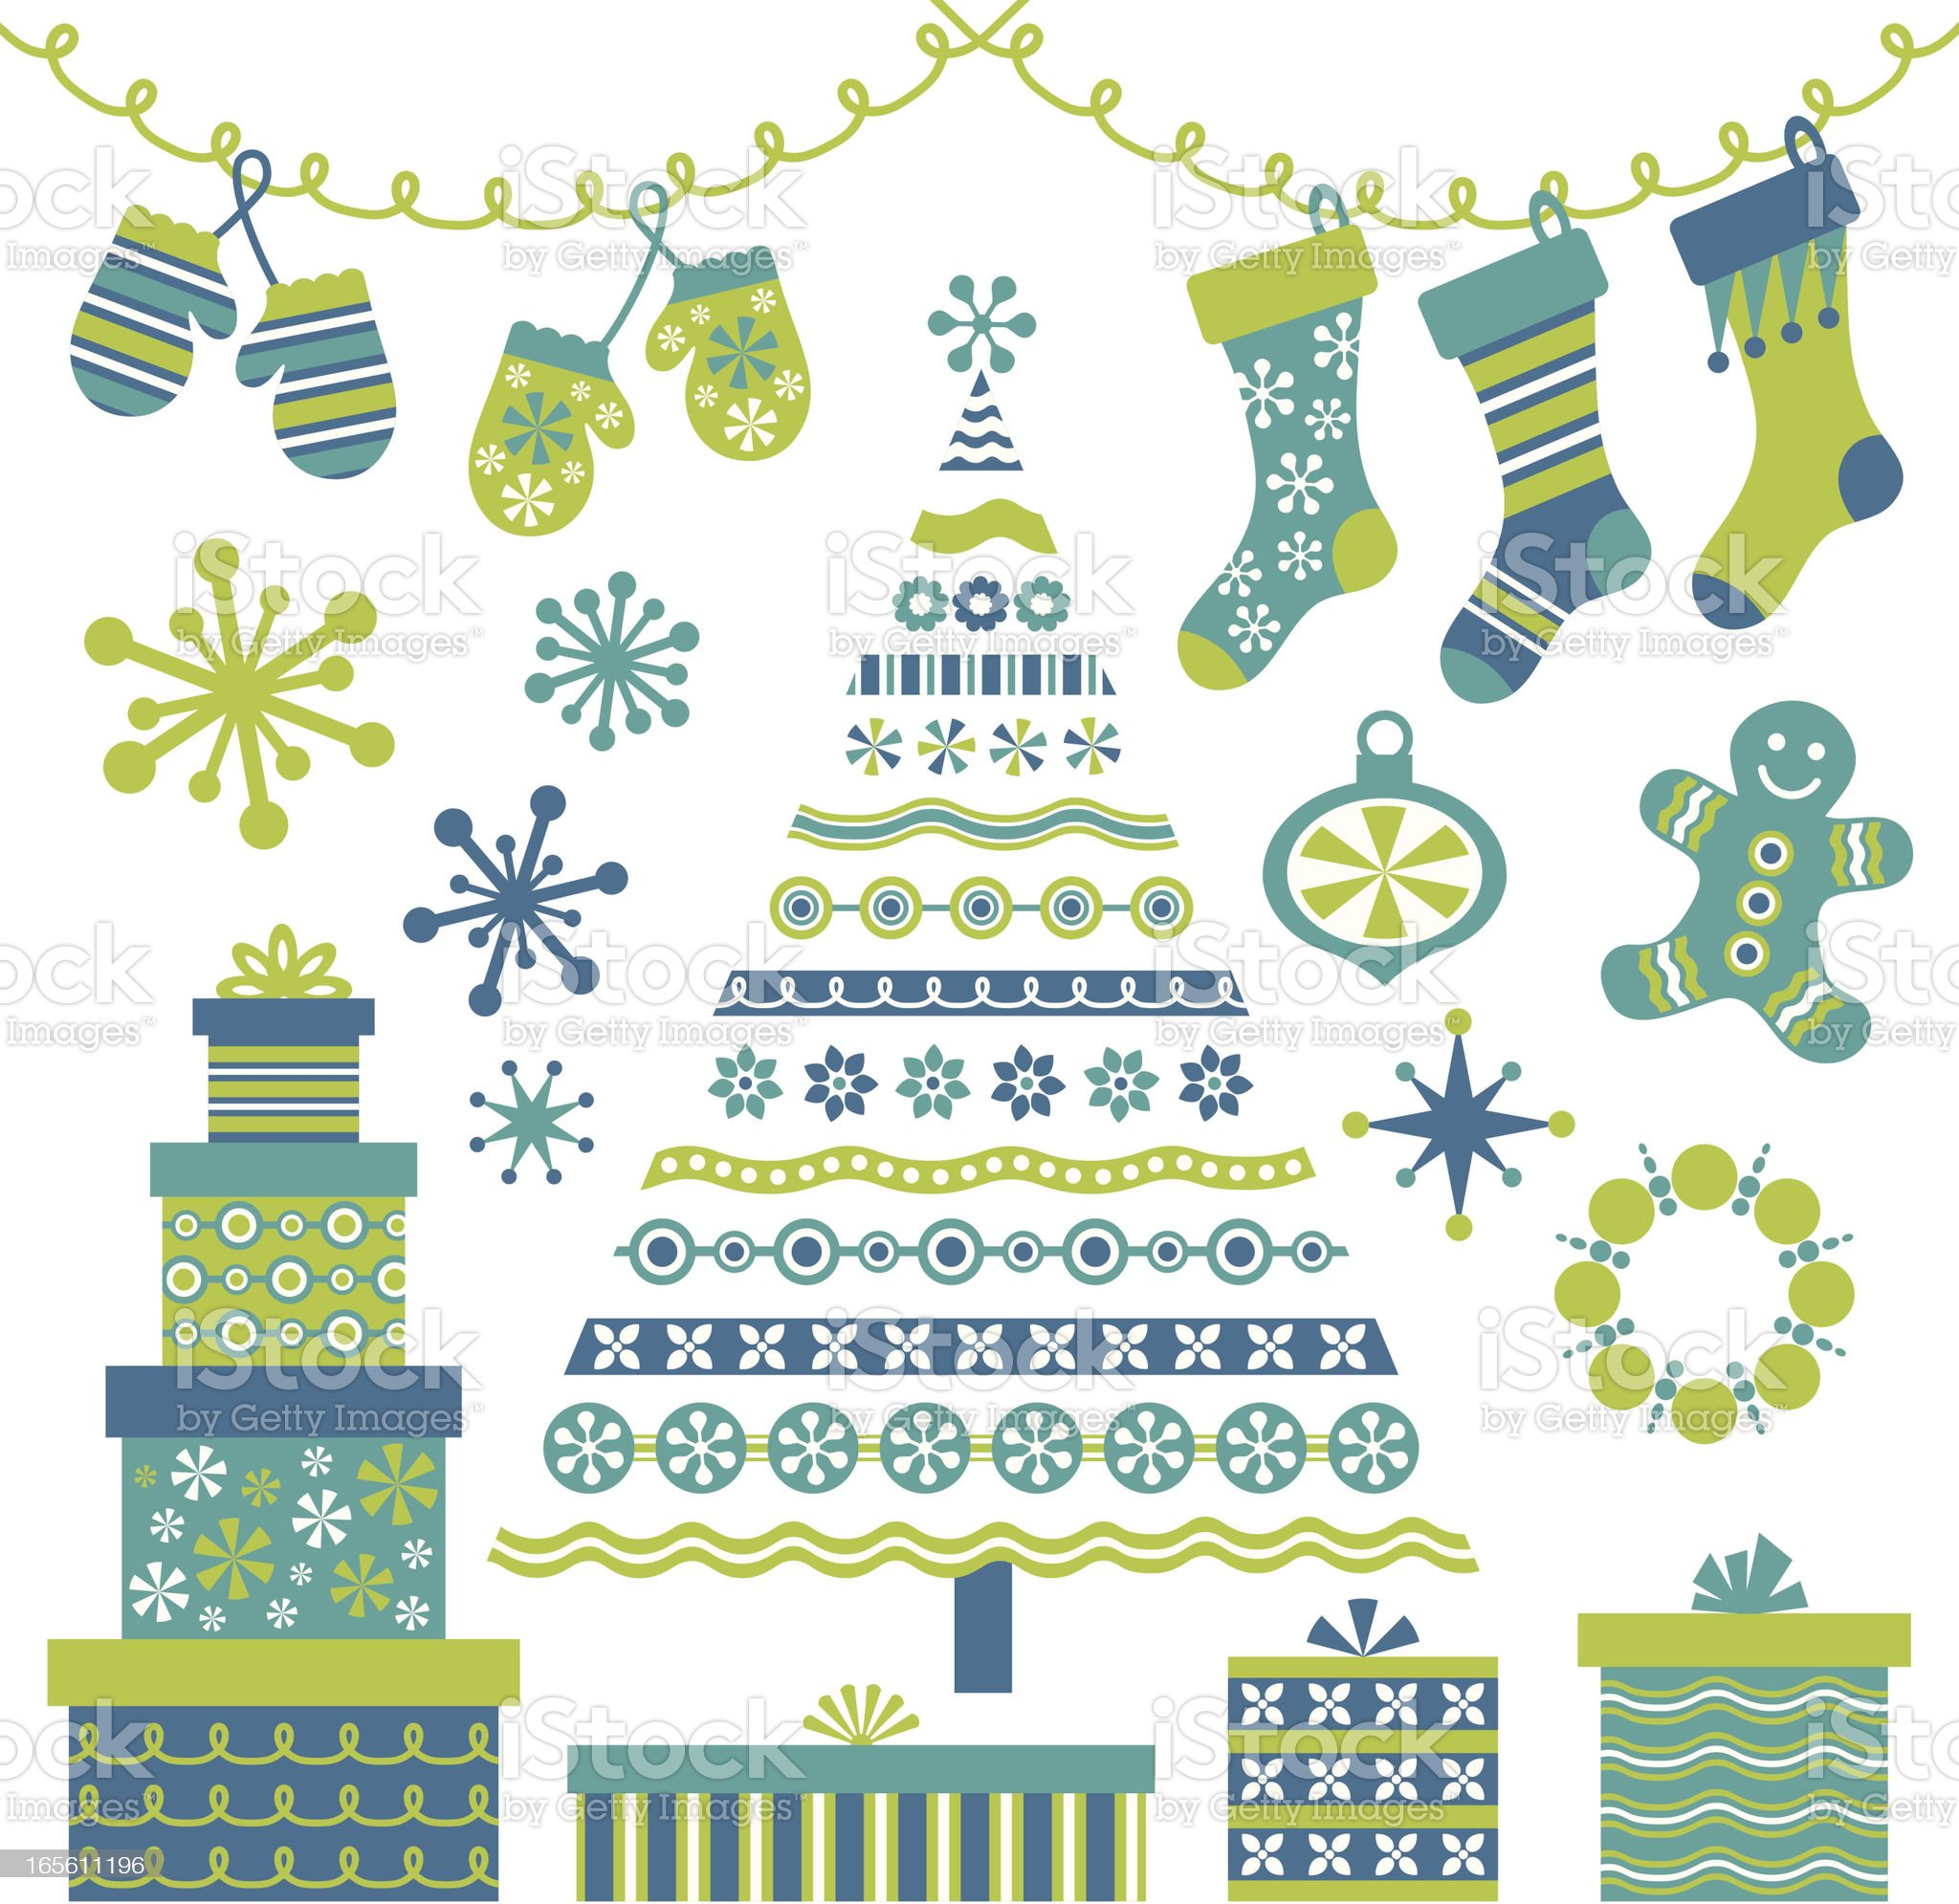 Retro Blue Christmas Tree and Design Elements royalty-free stock vector art